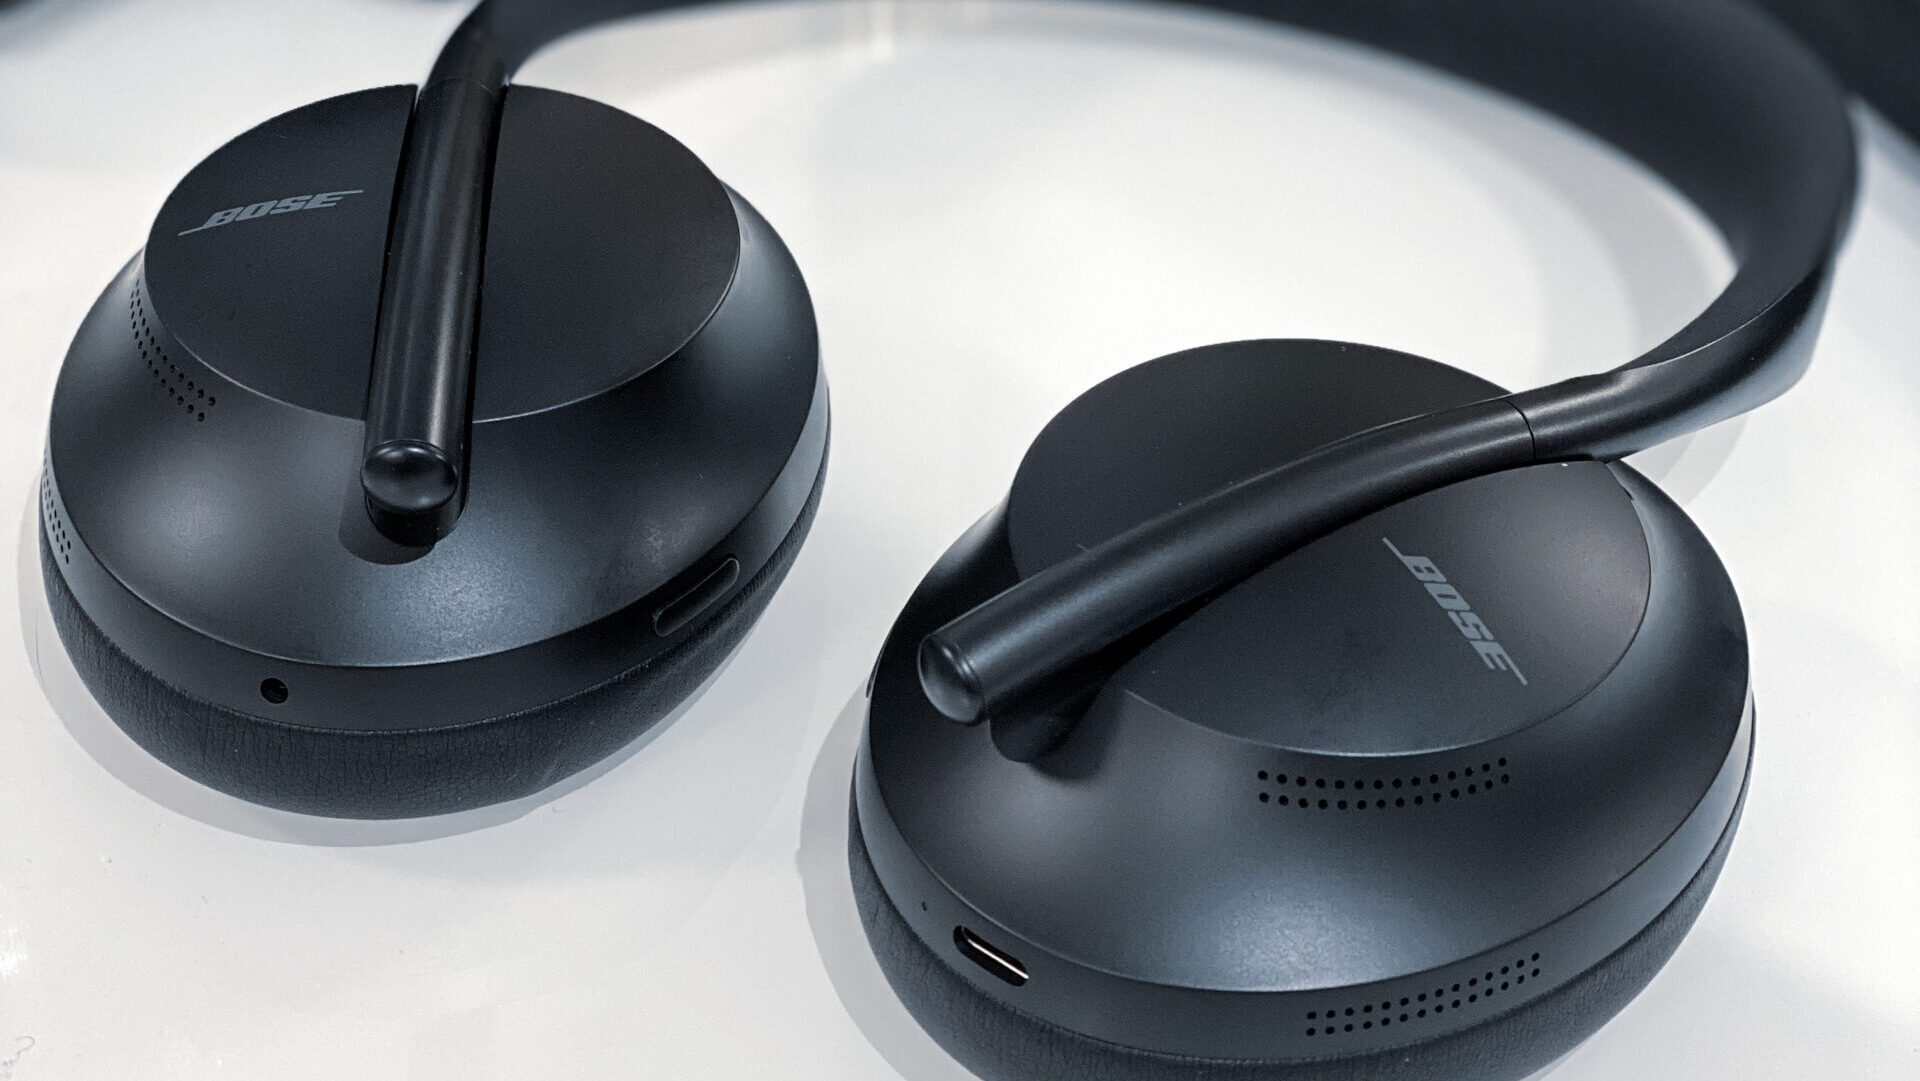 Bose 700 headphones close-up